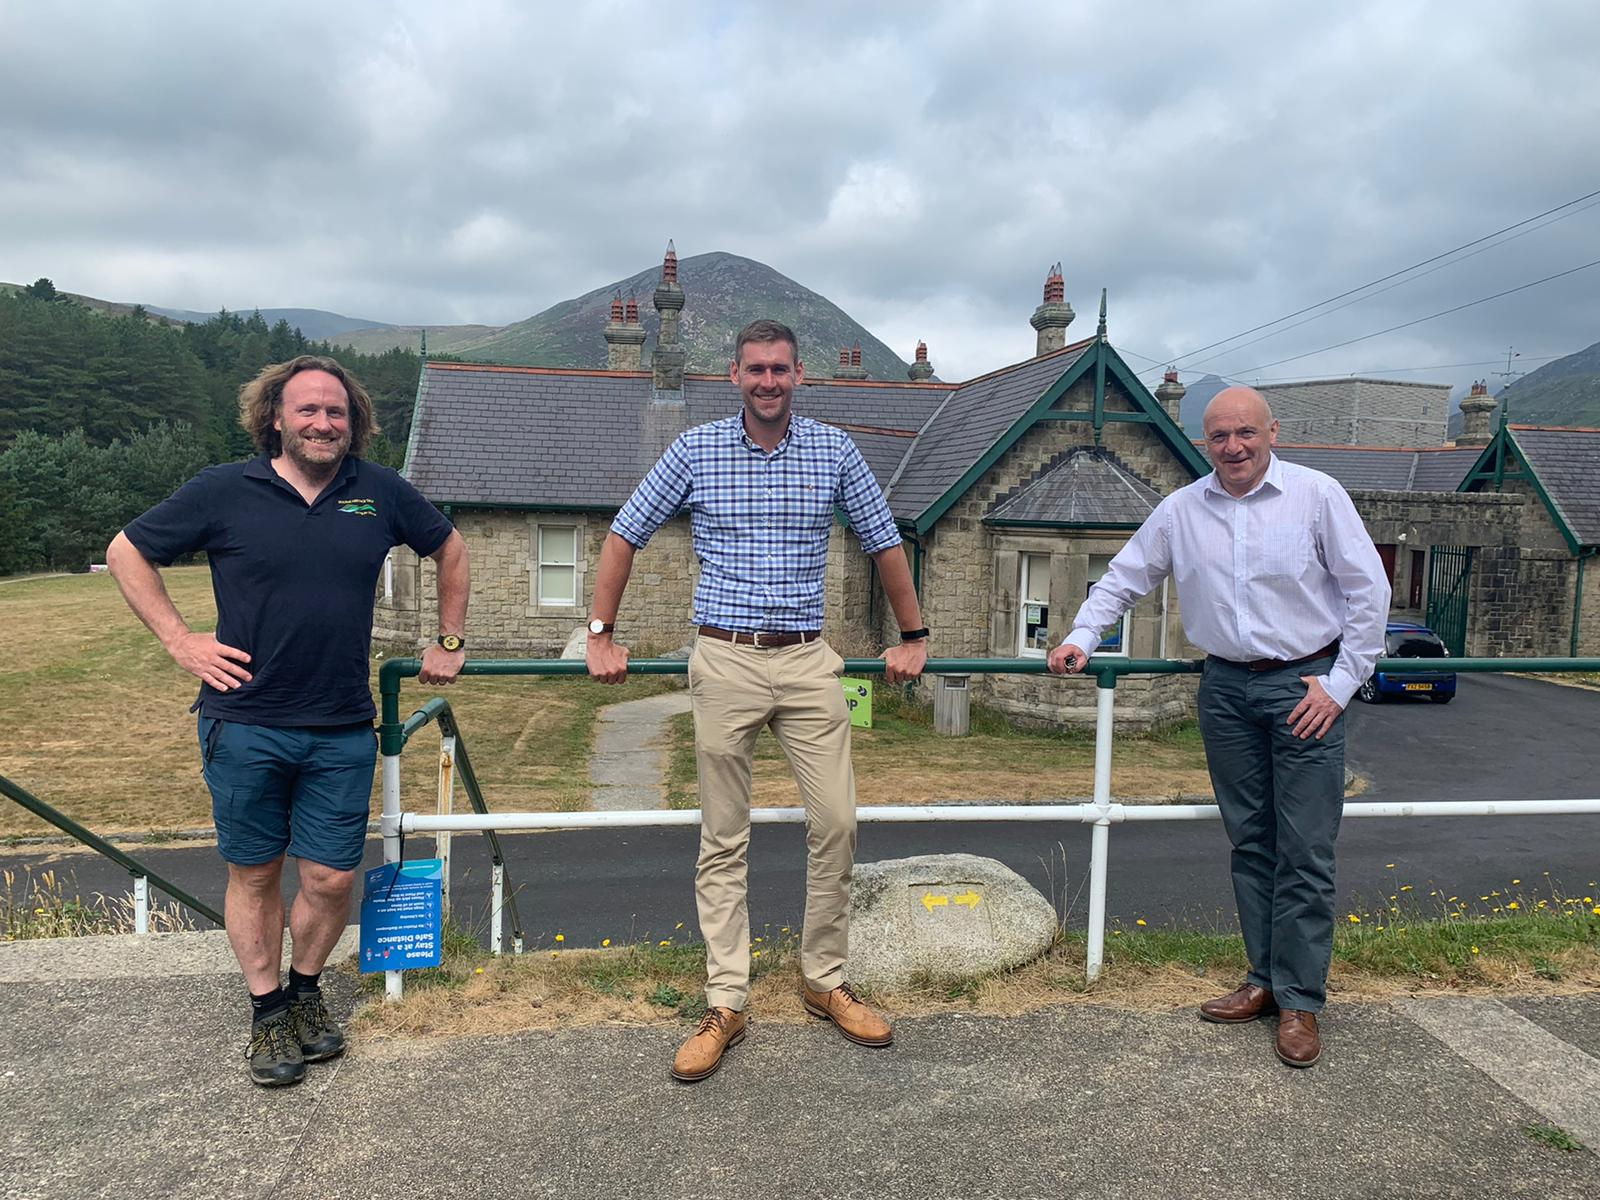 Alliance Councillor calls for strategy to protect Mournes landscape - Newry Times - newry breaking news